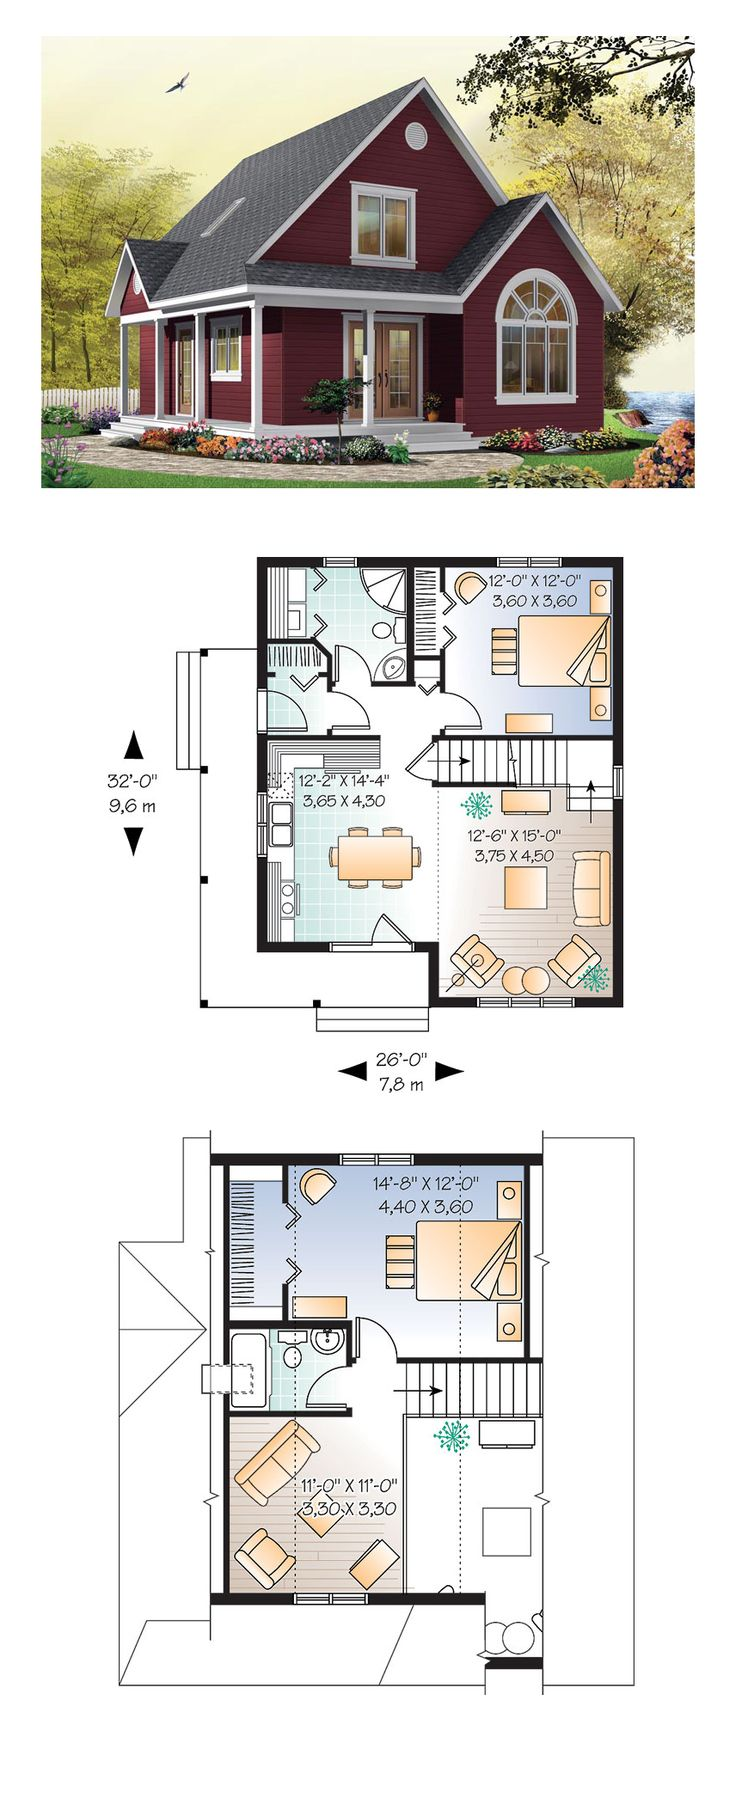 cottage style cool house plan id chp 28554 total living area 1226 - Tiny House Plans